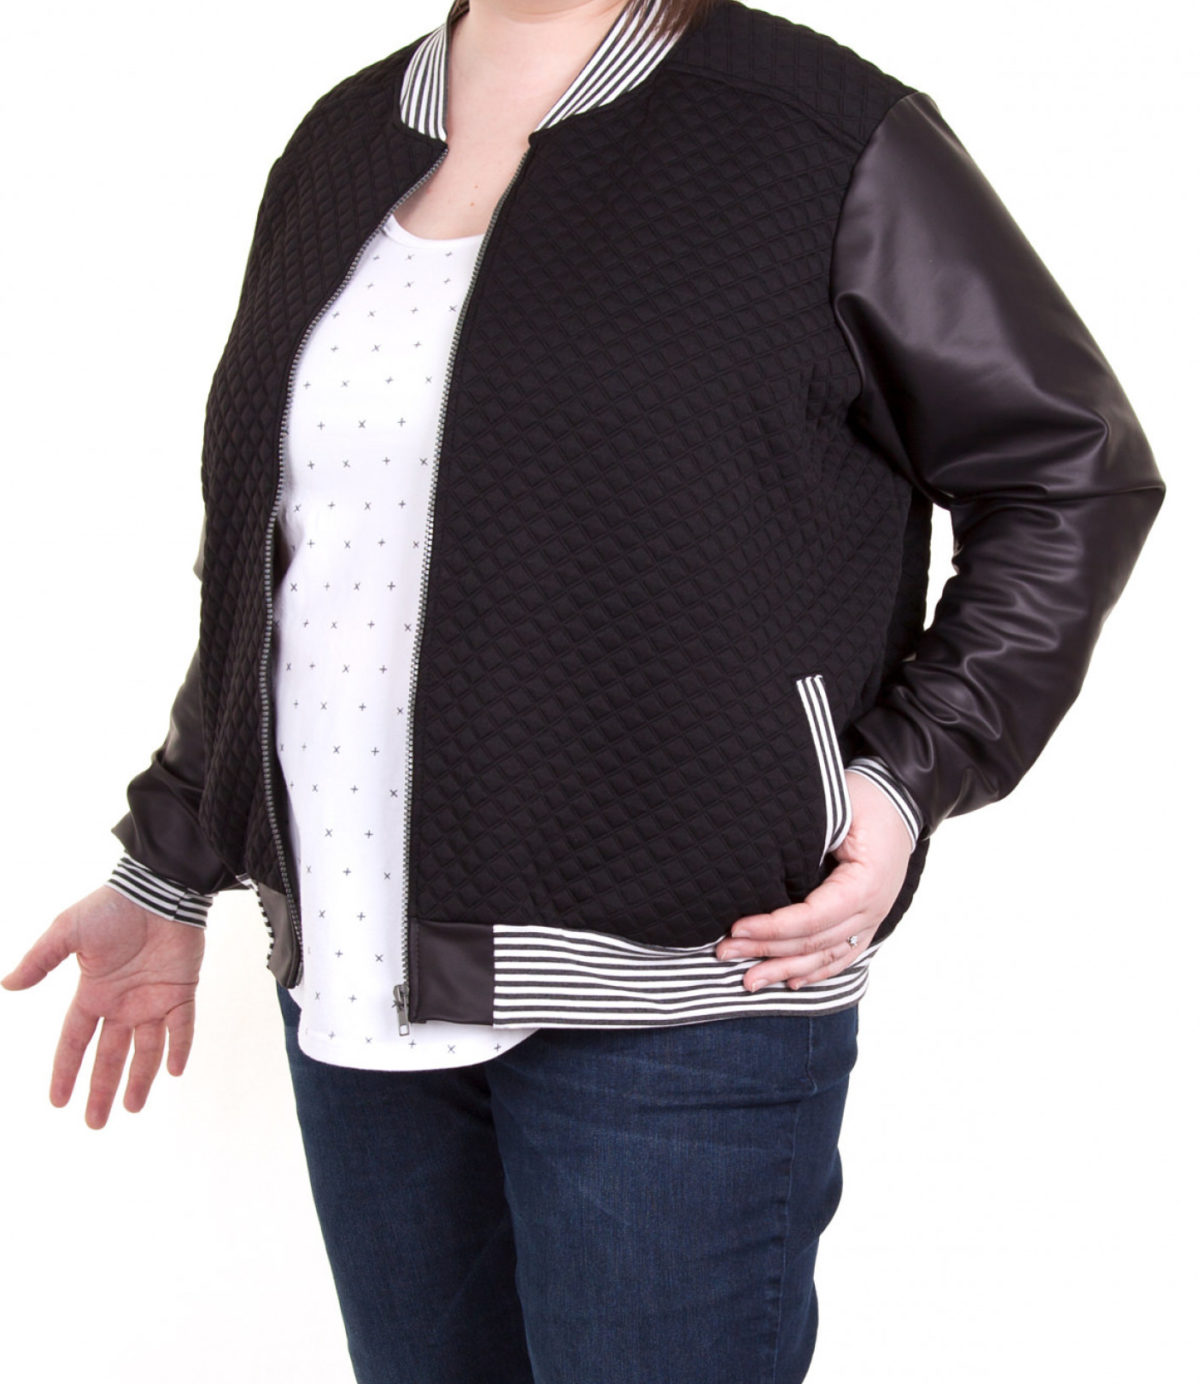 Selected Sewing Patterns for the Classic Bomber Jacket